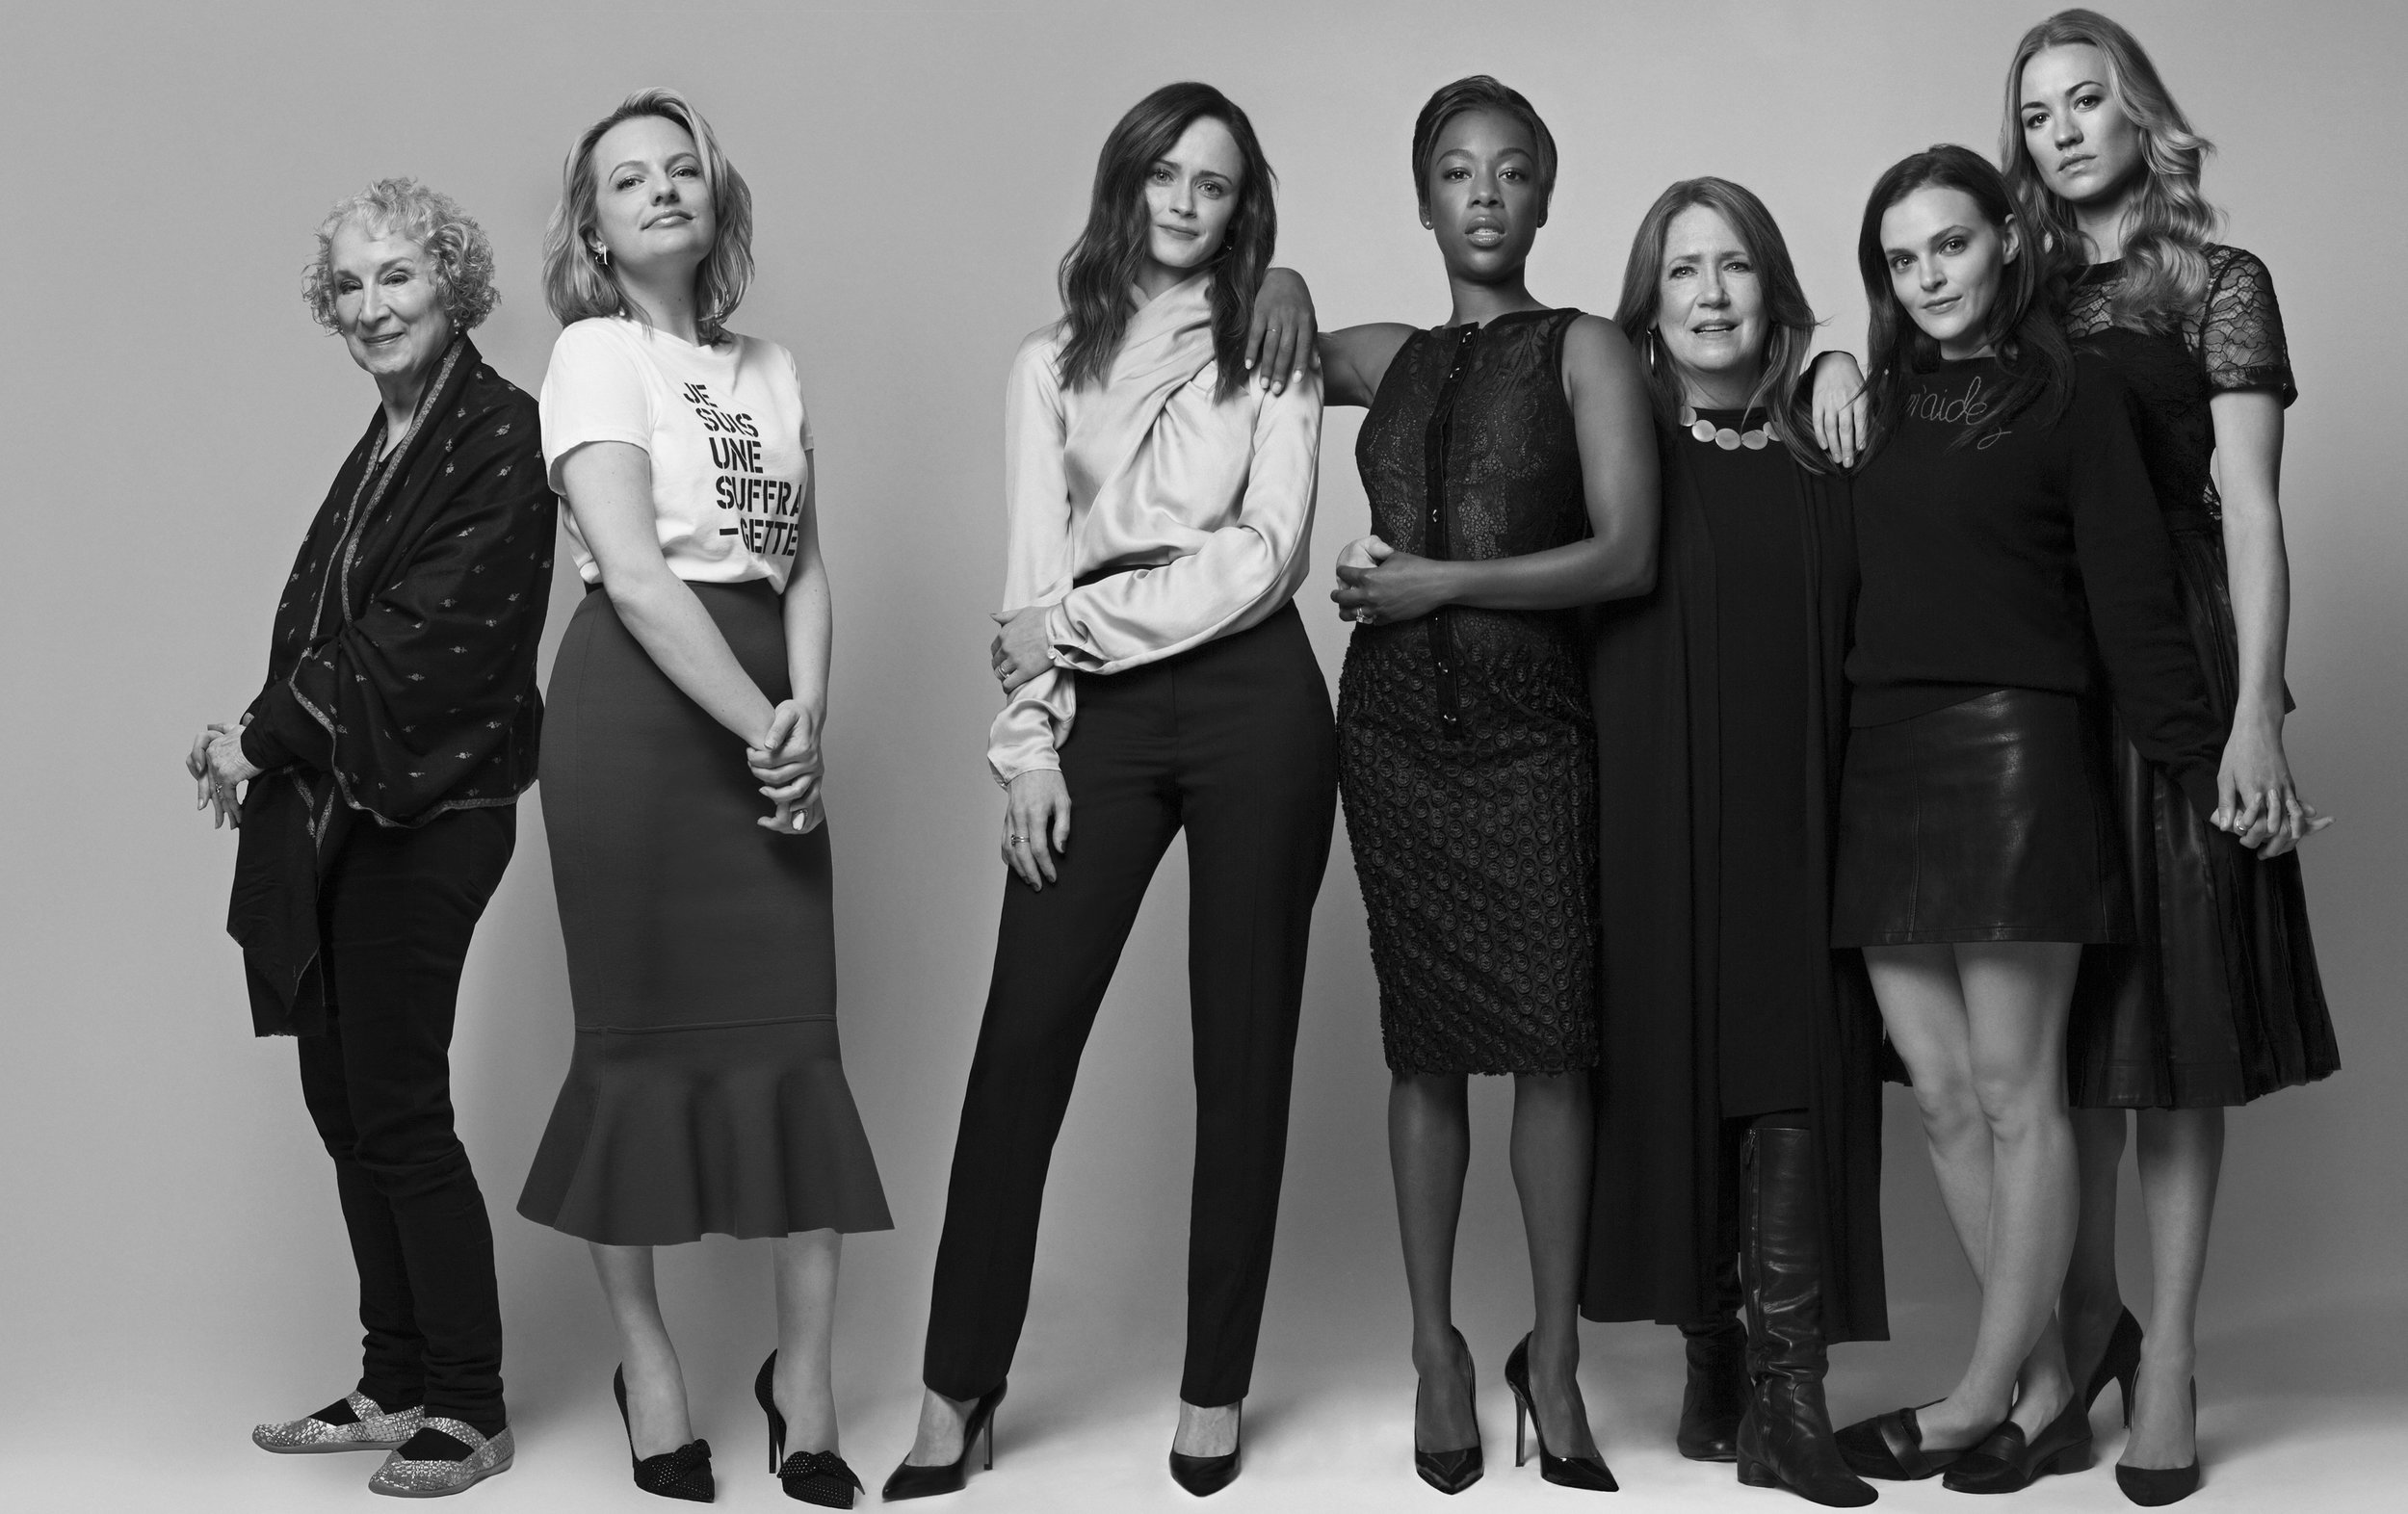 Cast of the Handmaid's Tale / W Magazine